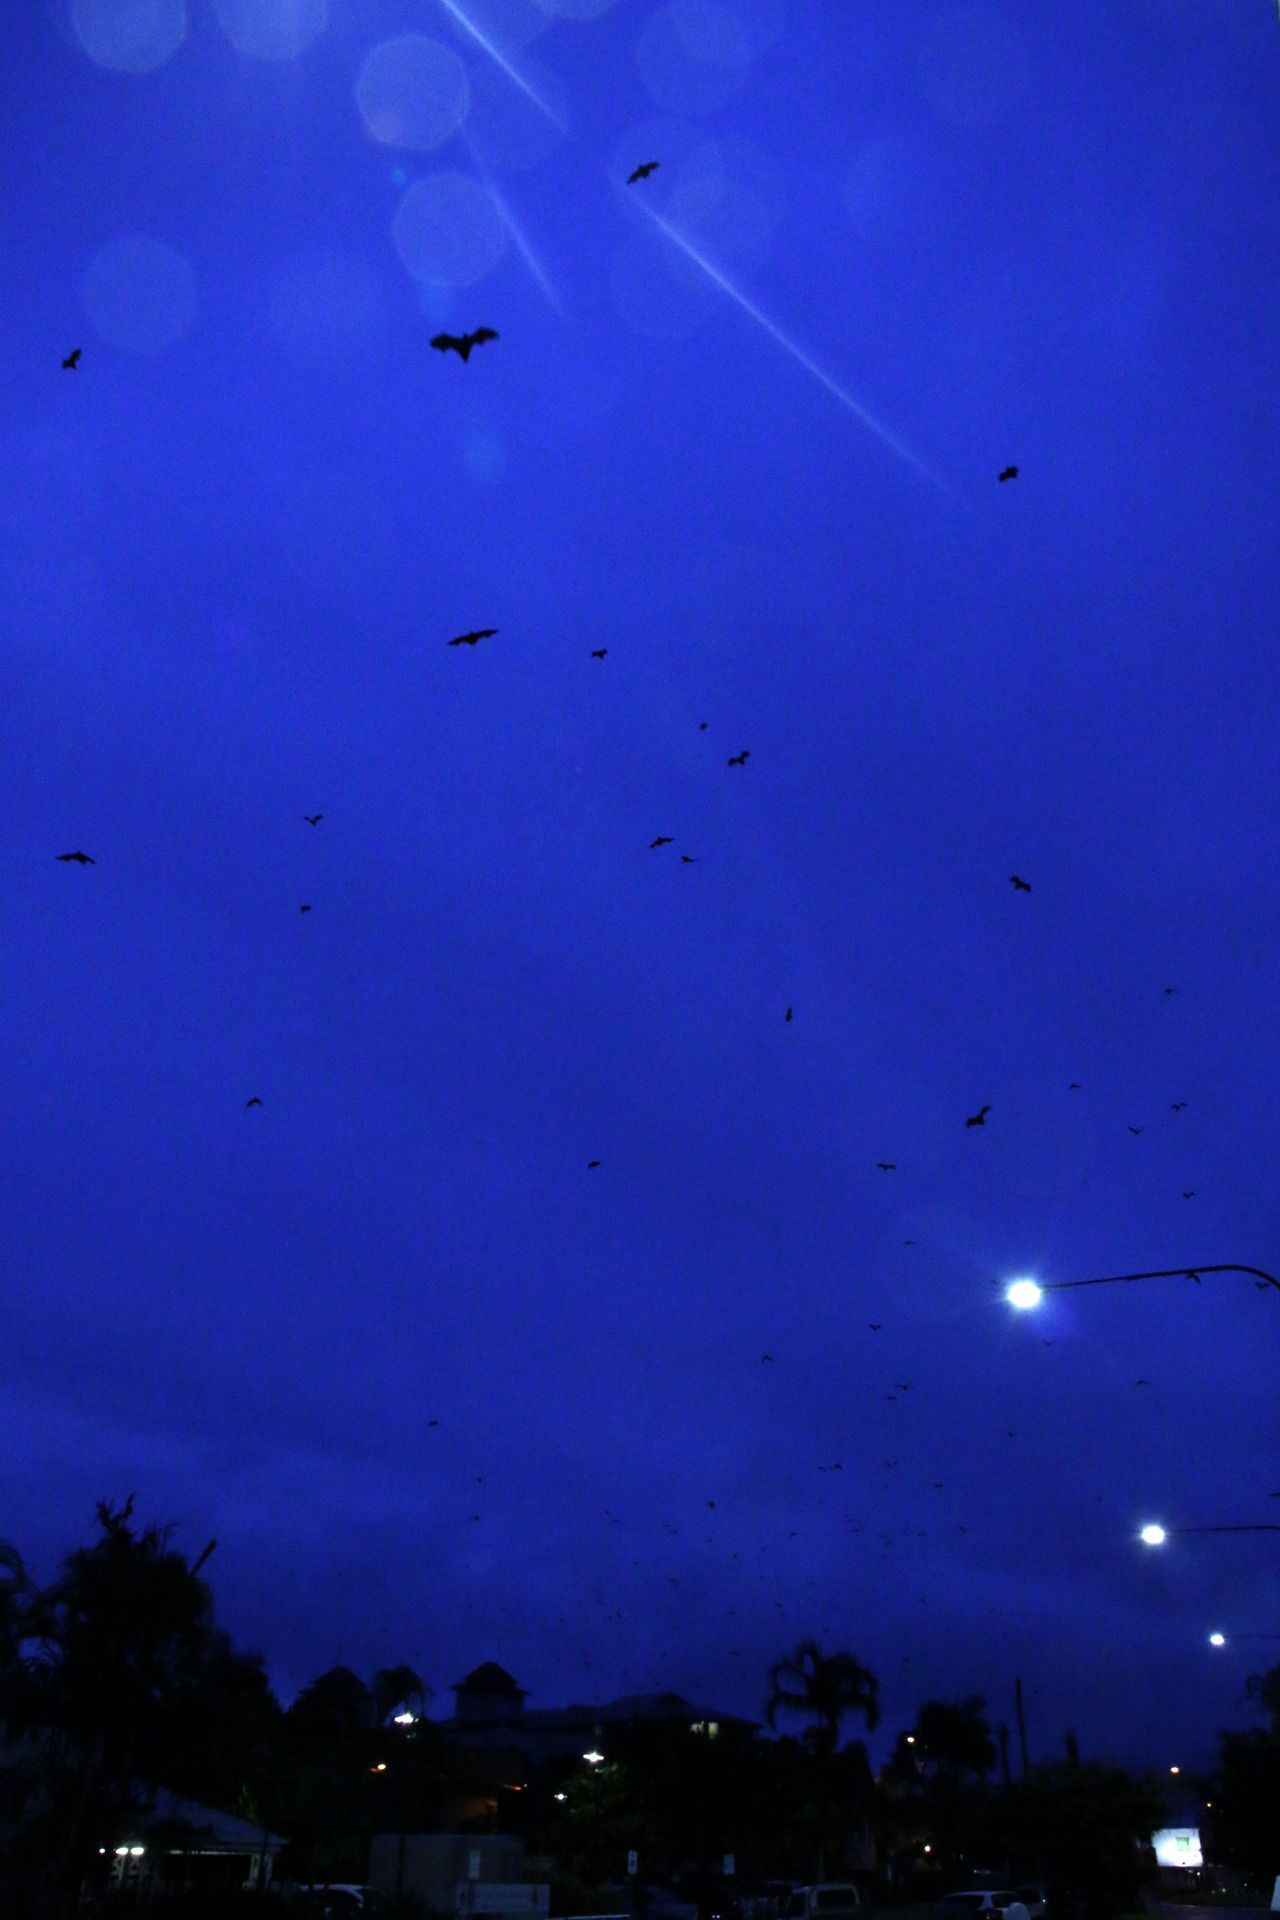 In Cairns, when the sun goes down, all those bats I've been taking pictures of take off, and just fill the sky. It's an amazing sight.